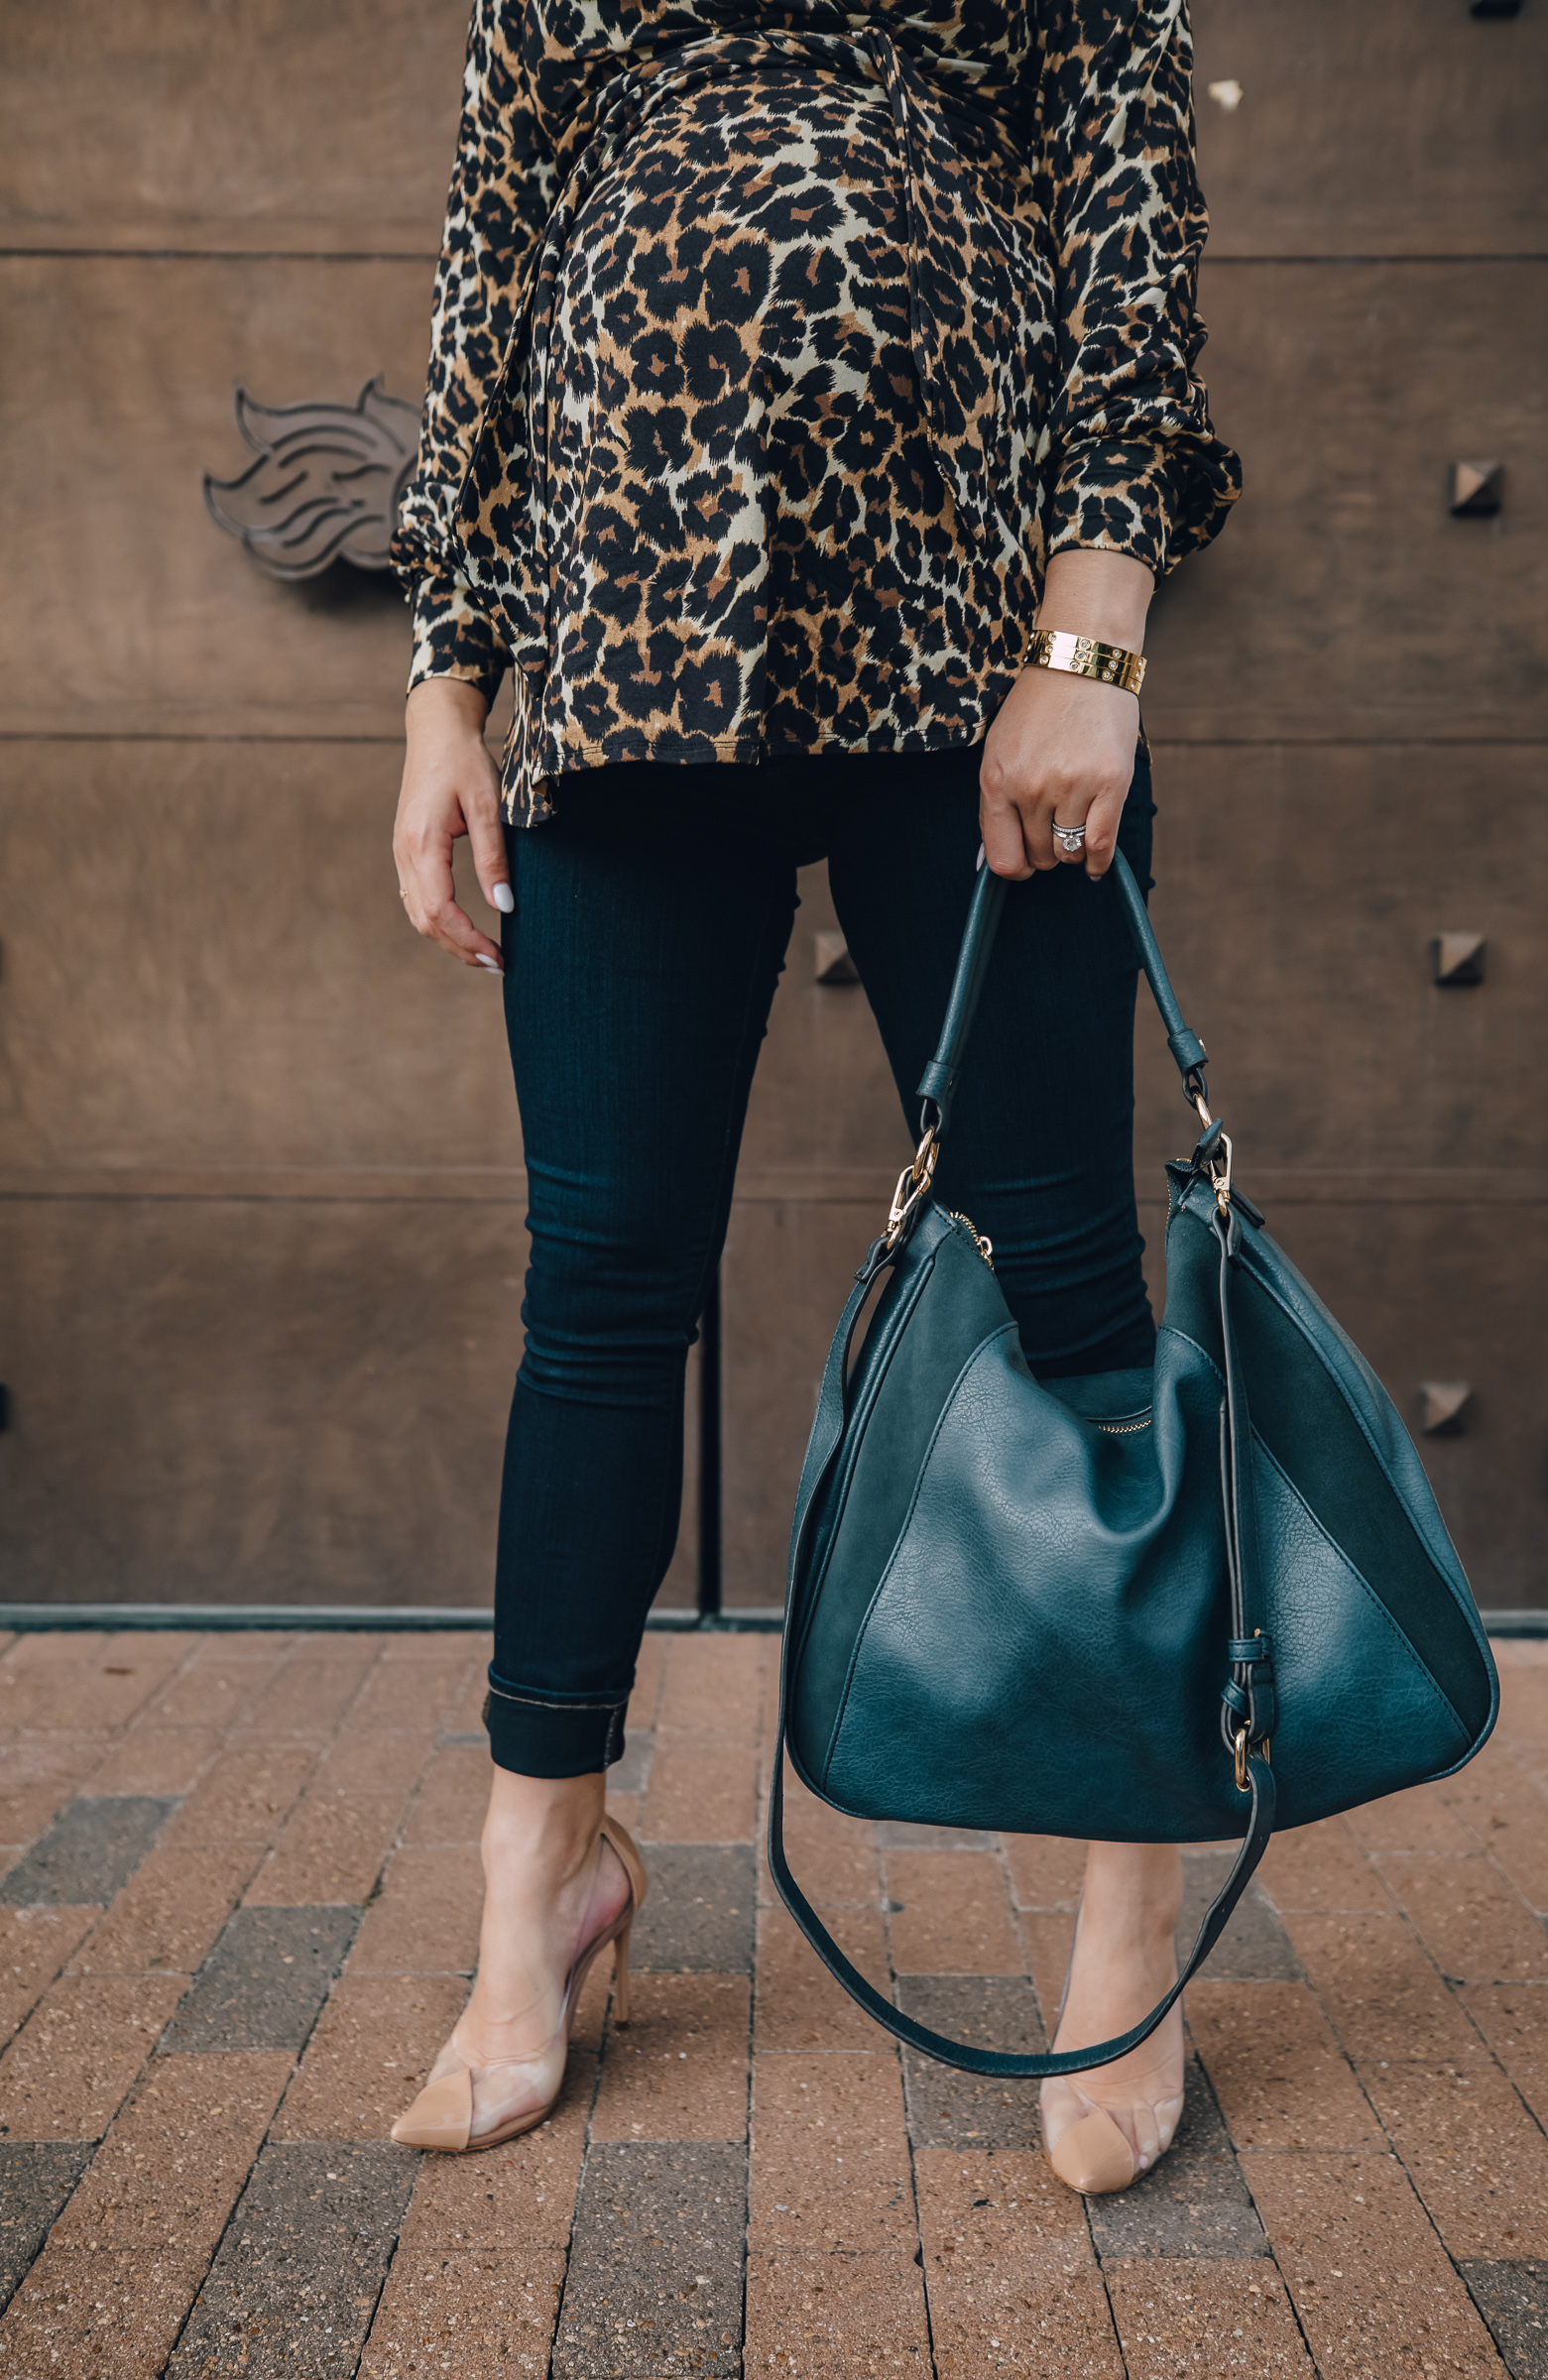 fashion blogger Elly Brown wears Sole Society bag with a leopard top for a fall maternity outfit